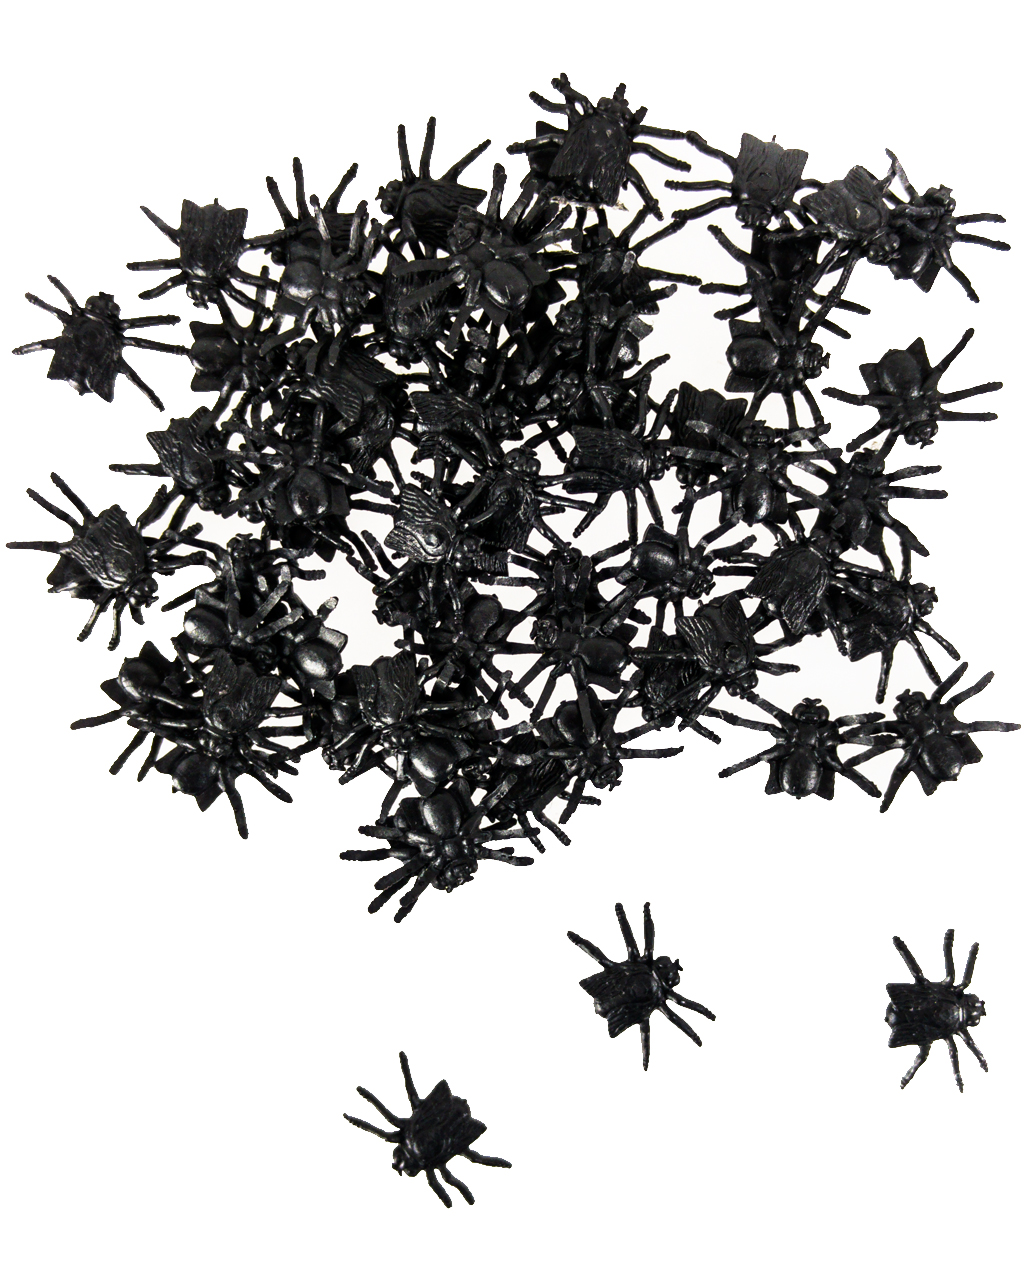 flying small black 70 st plastic fly as halloween decoration horror. Black Bedroom Furniture Sets. Home Design Ideas